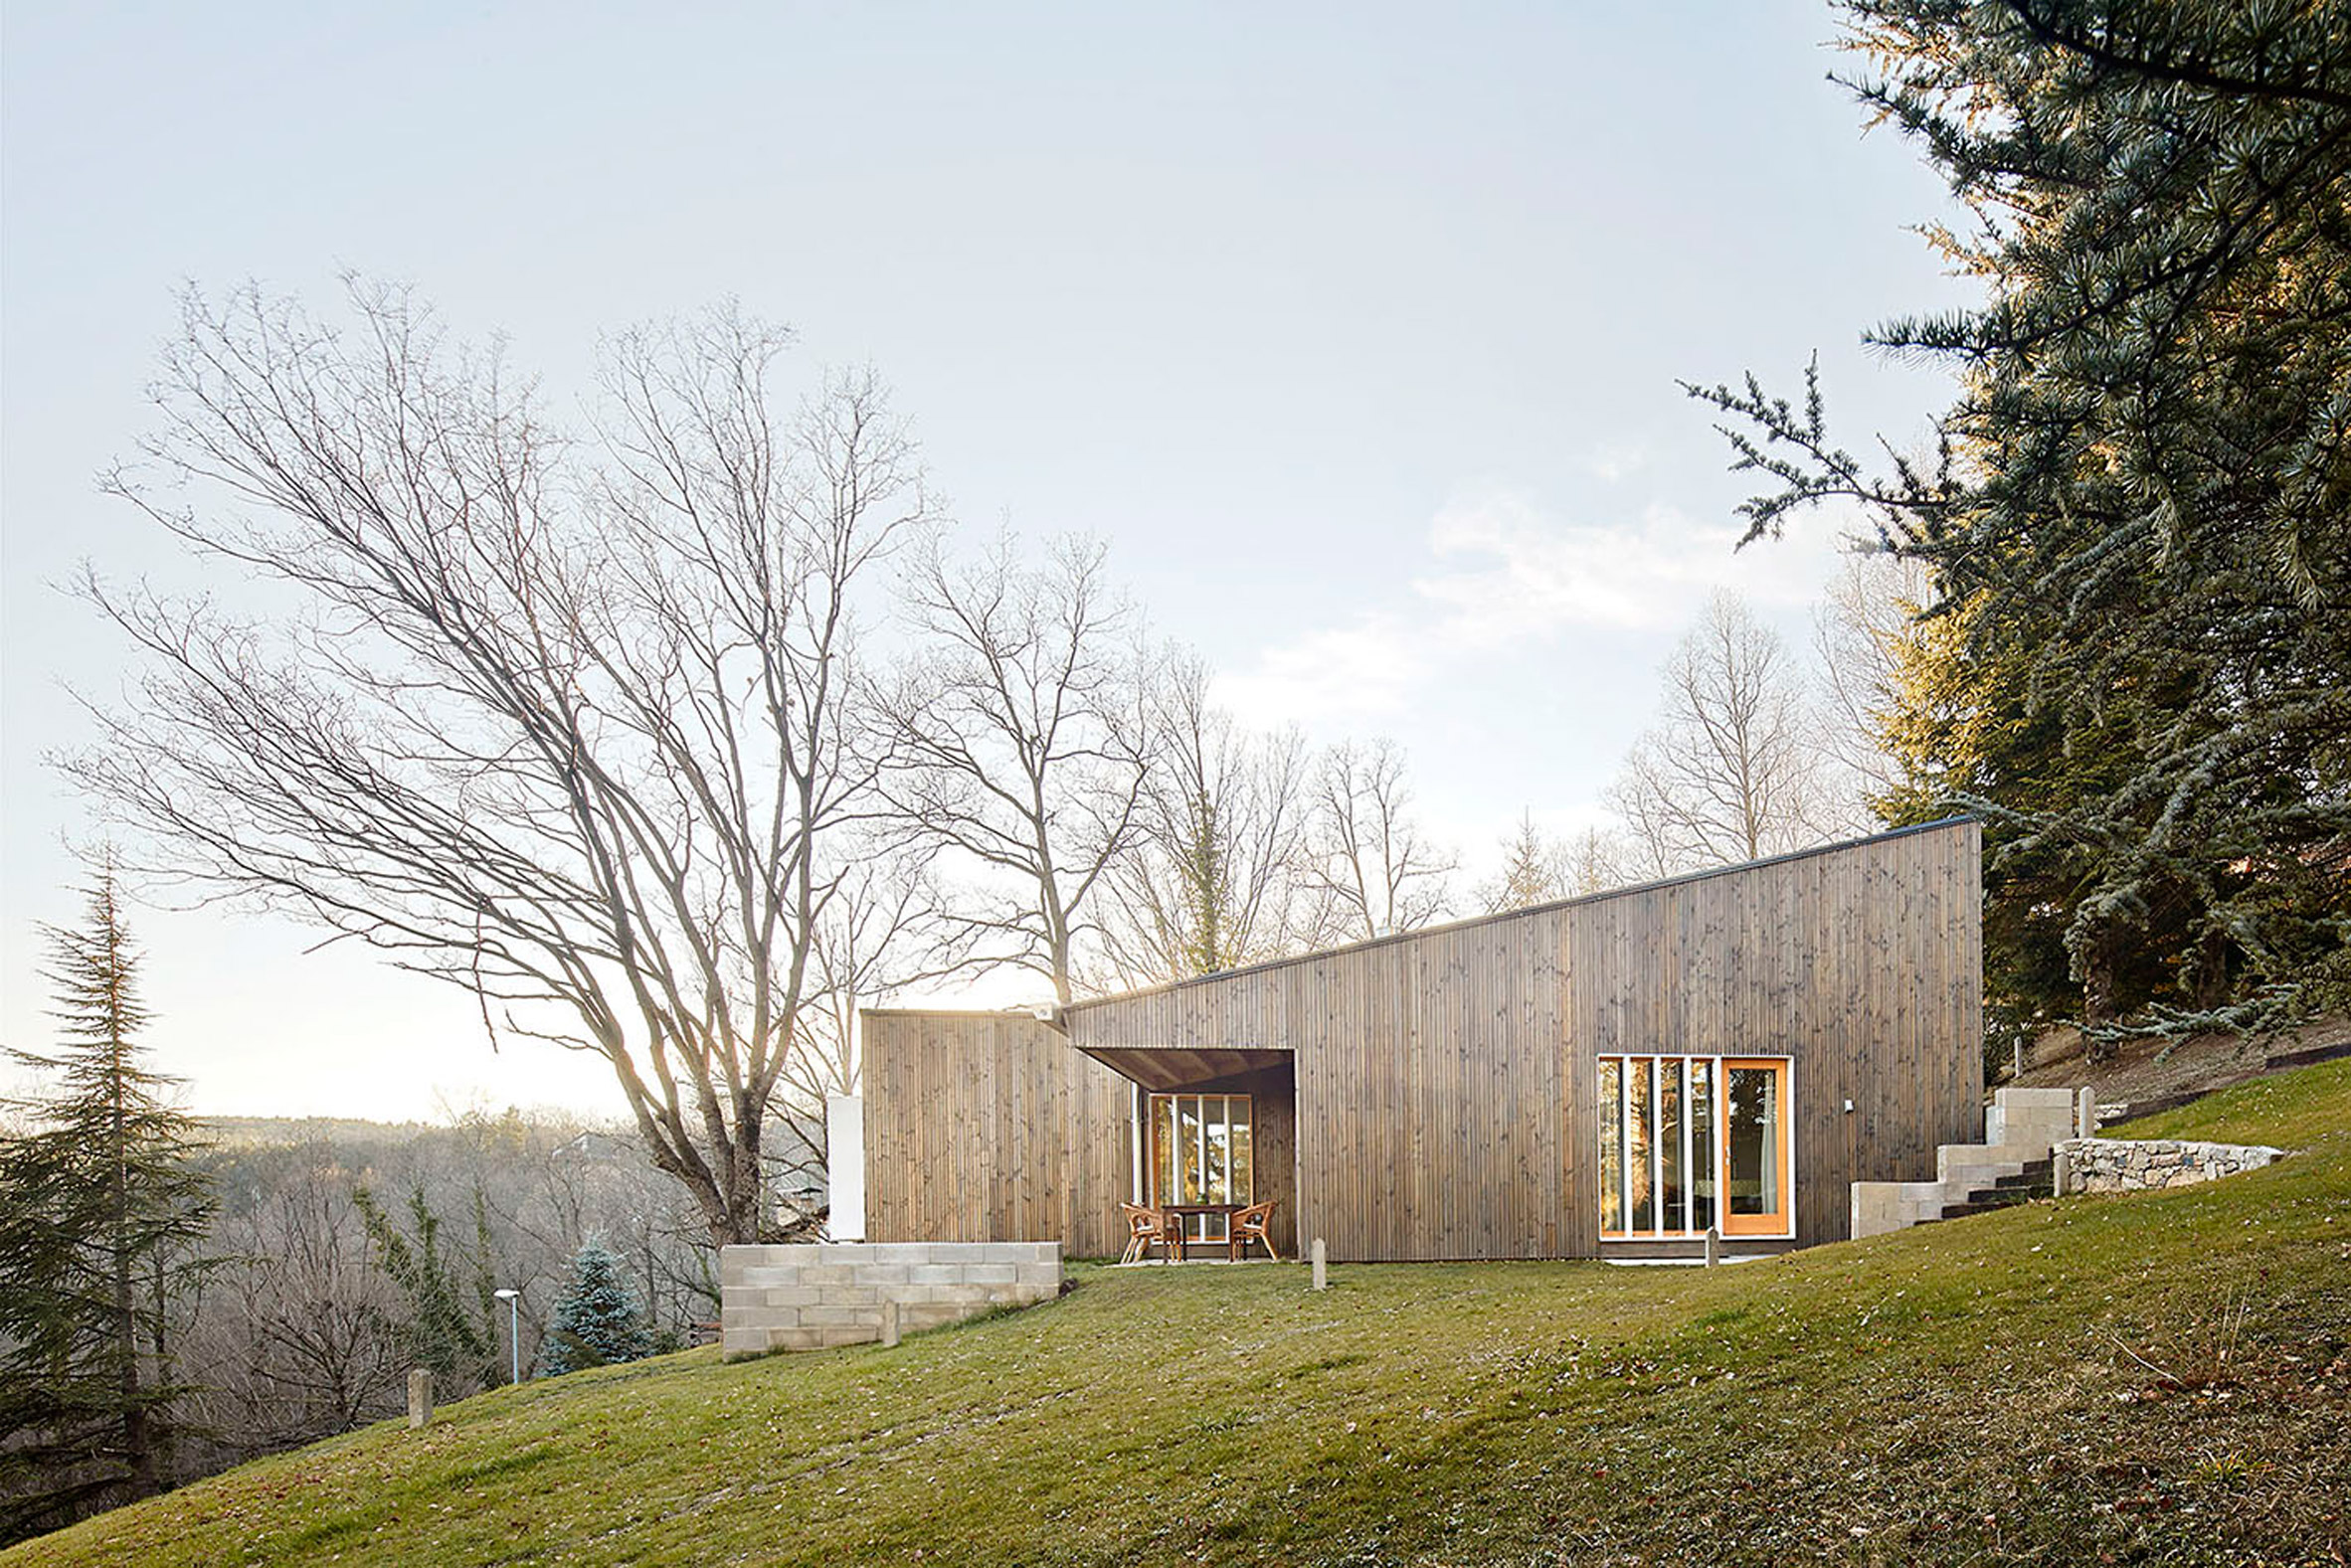 2. Prefababricated wooden home in the Pyrenees by architect Marc Mogas - Prefabricated wooden home in the Pyrenees by architect Marc Mogas